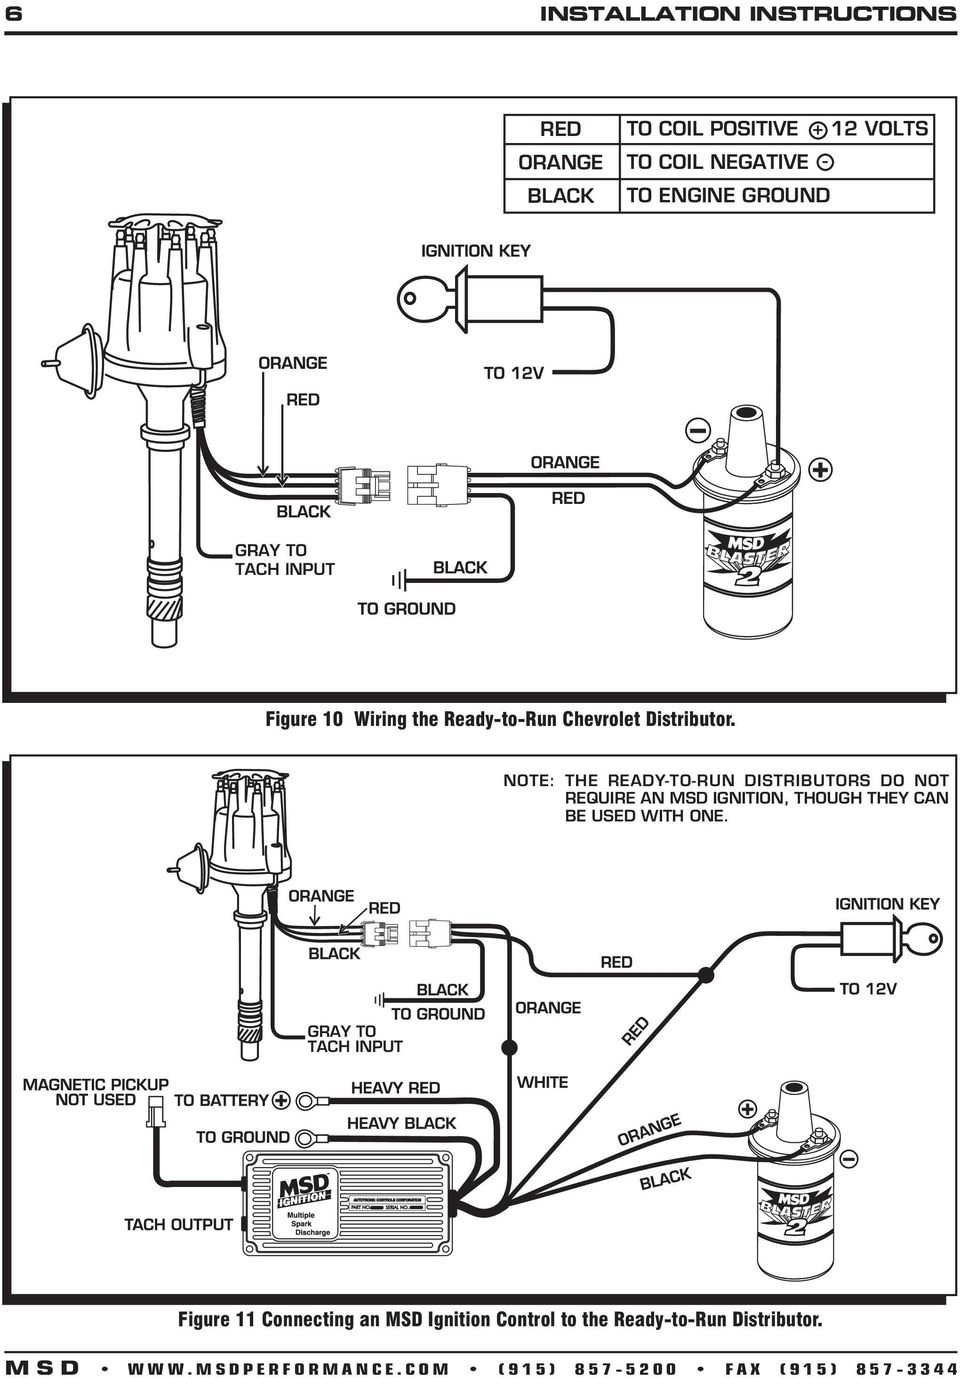 Msd Pro Billet Ready To Run Chevrolet V8 Distributor Pn 8360 Gm Wiring Diagram Note The Distributors Do Not Require An Ignition